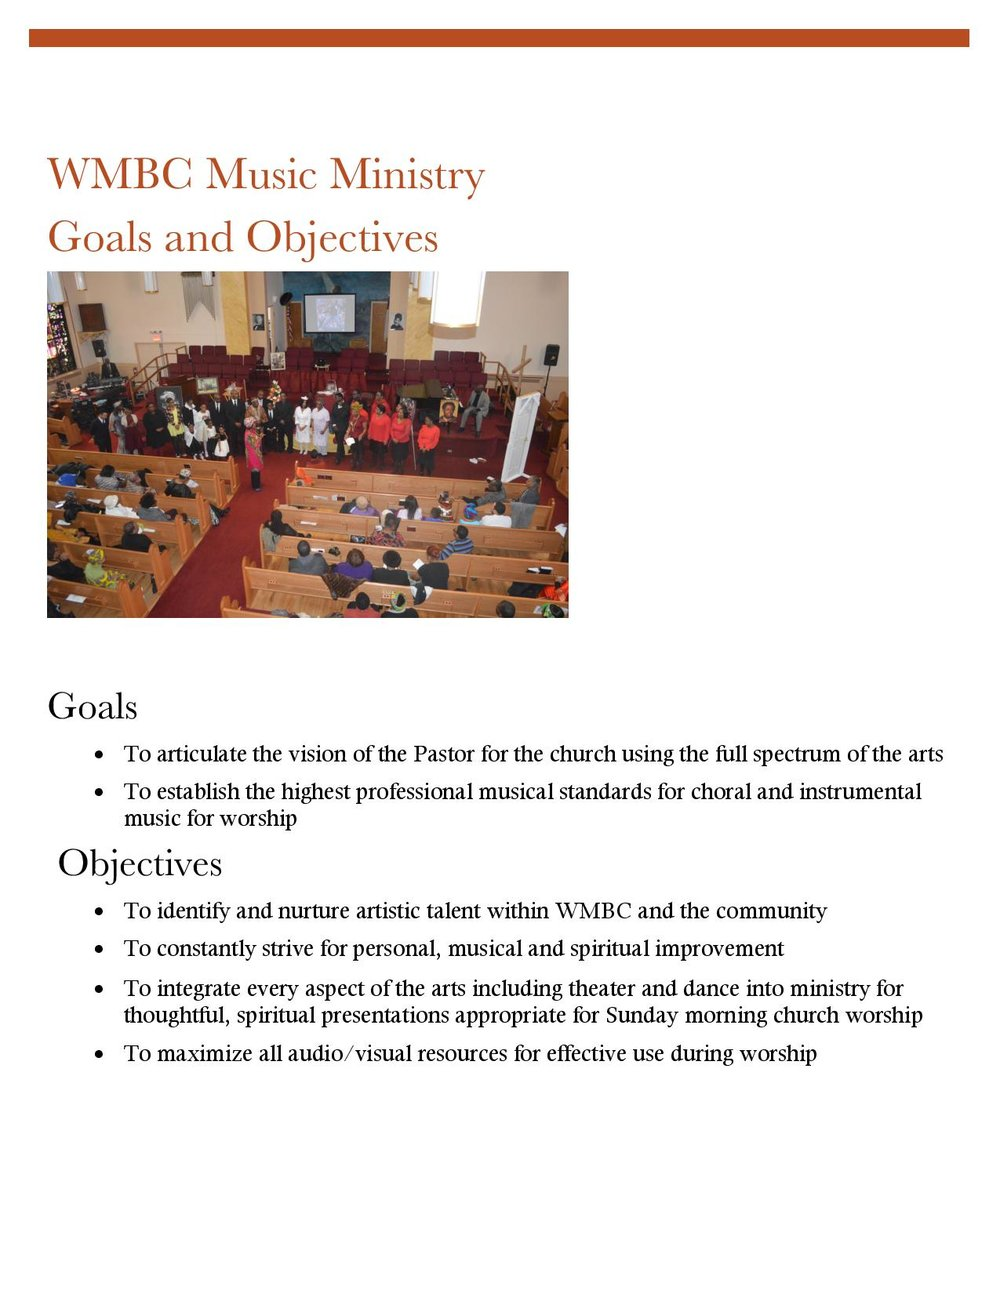 WMBC Music Ministry Newsletter July 2017  -1-page-003.jpg